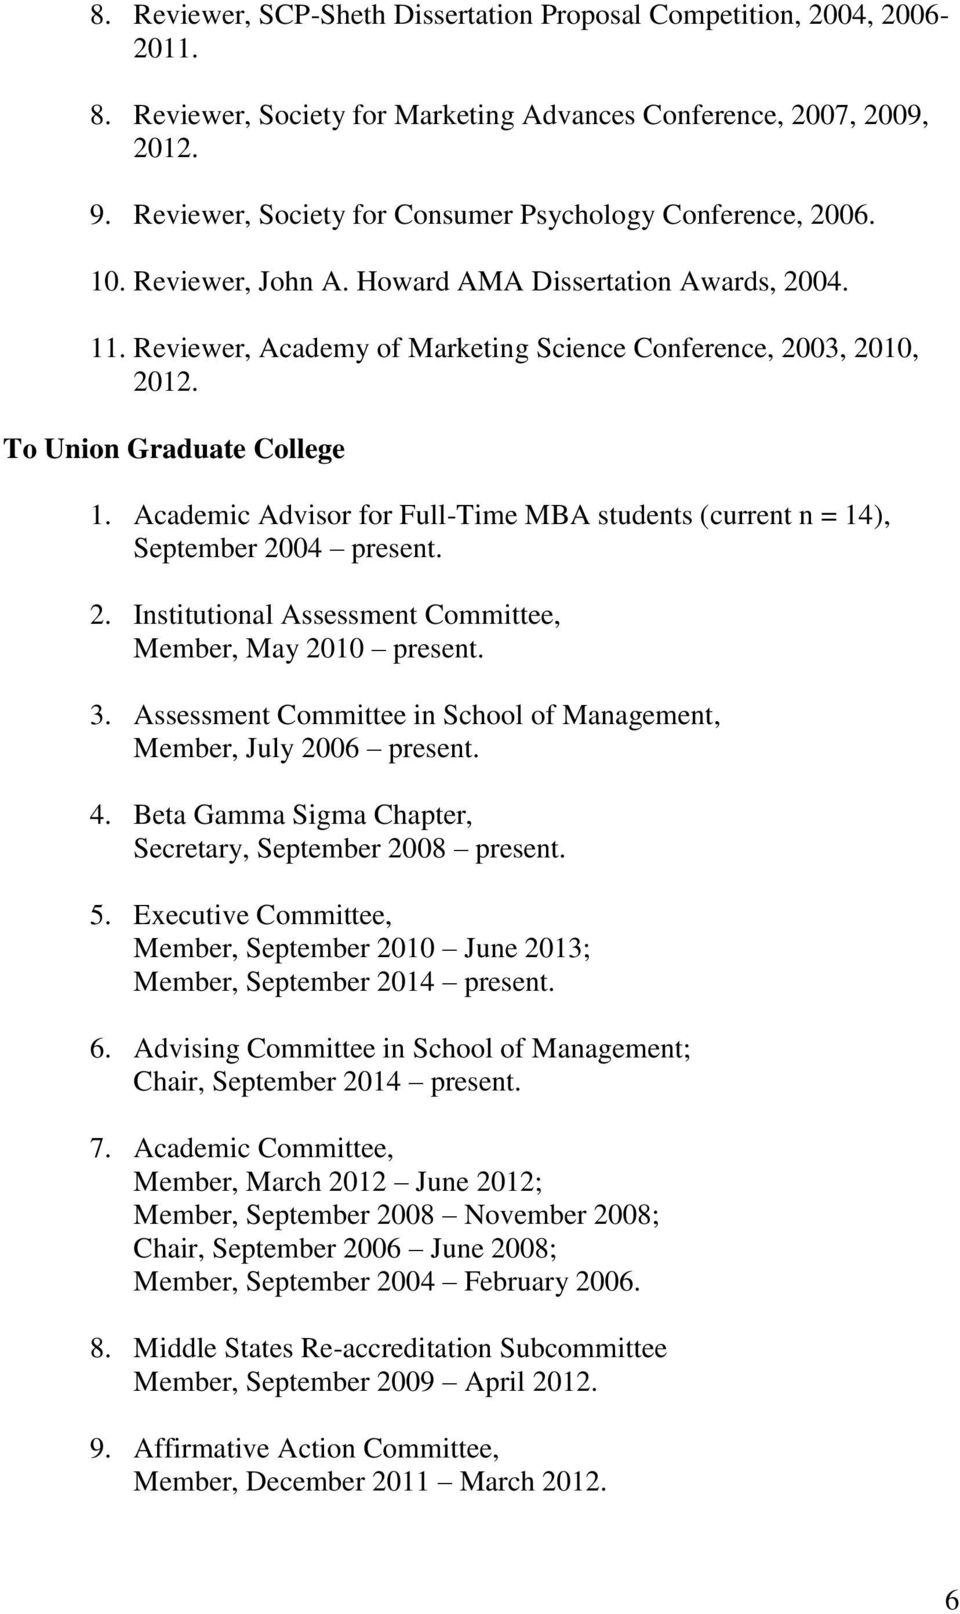 To Union Graduate College 1. Academic Advisor for Full-Time MBA students (current n = 14), September 2004 present. 2. Institutional Assessment Committee, Member, May 2010 present. 3.